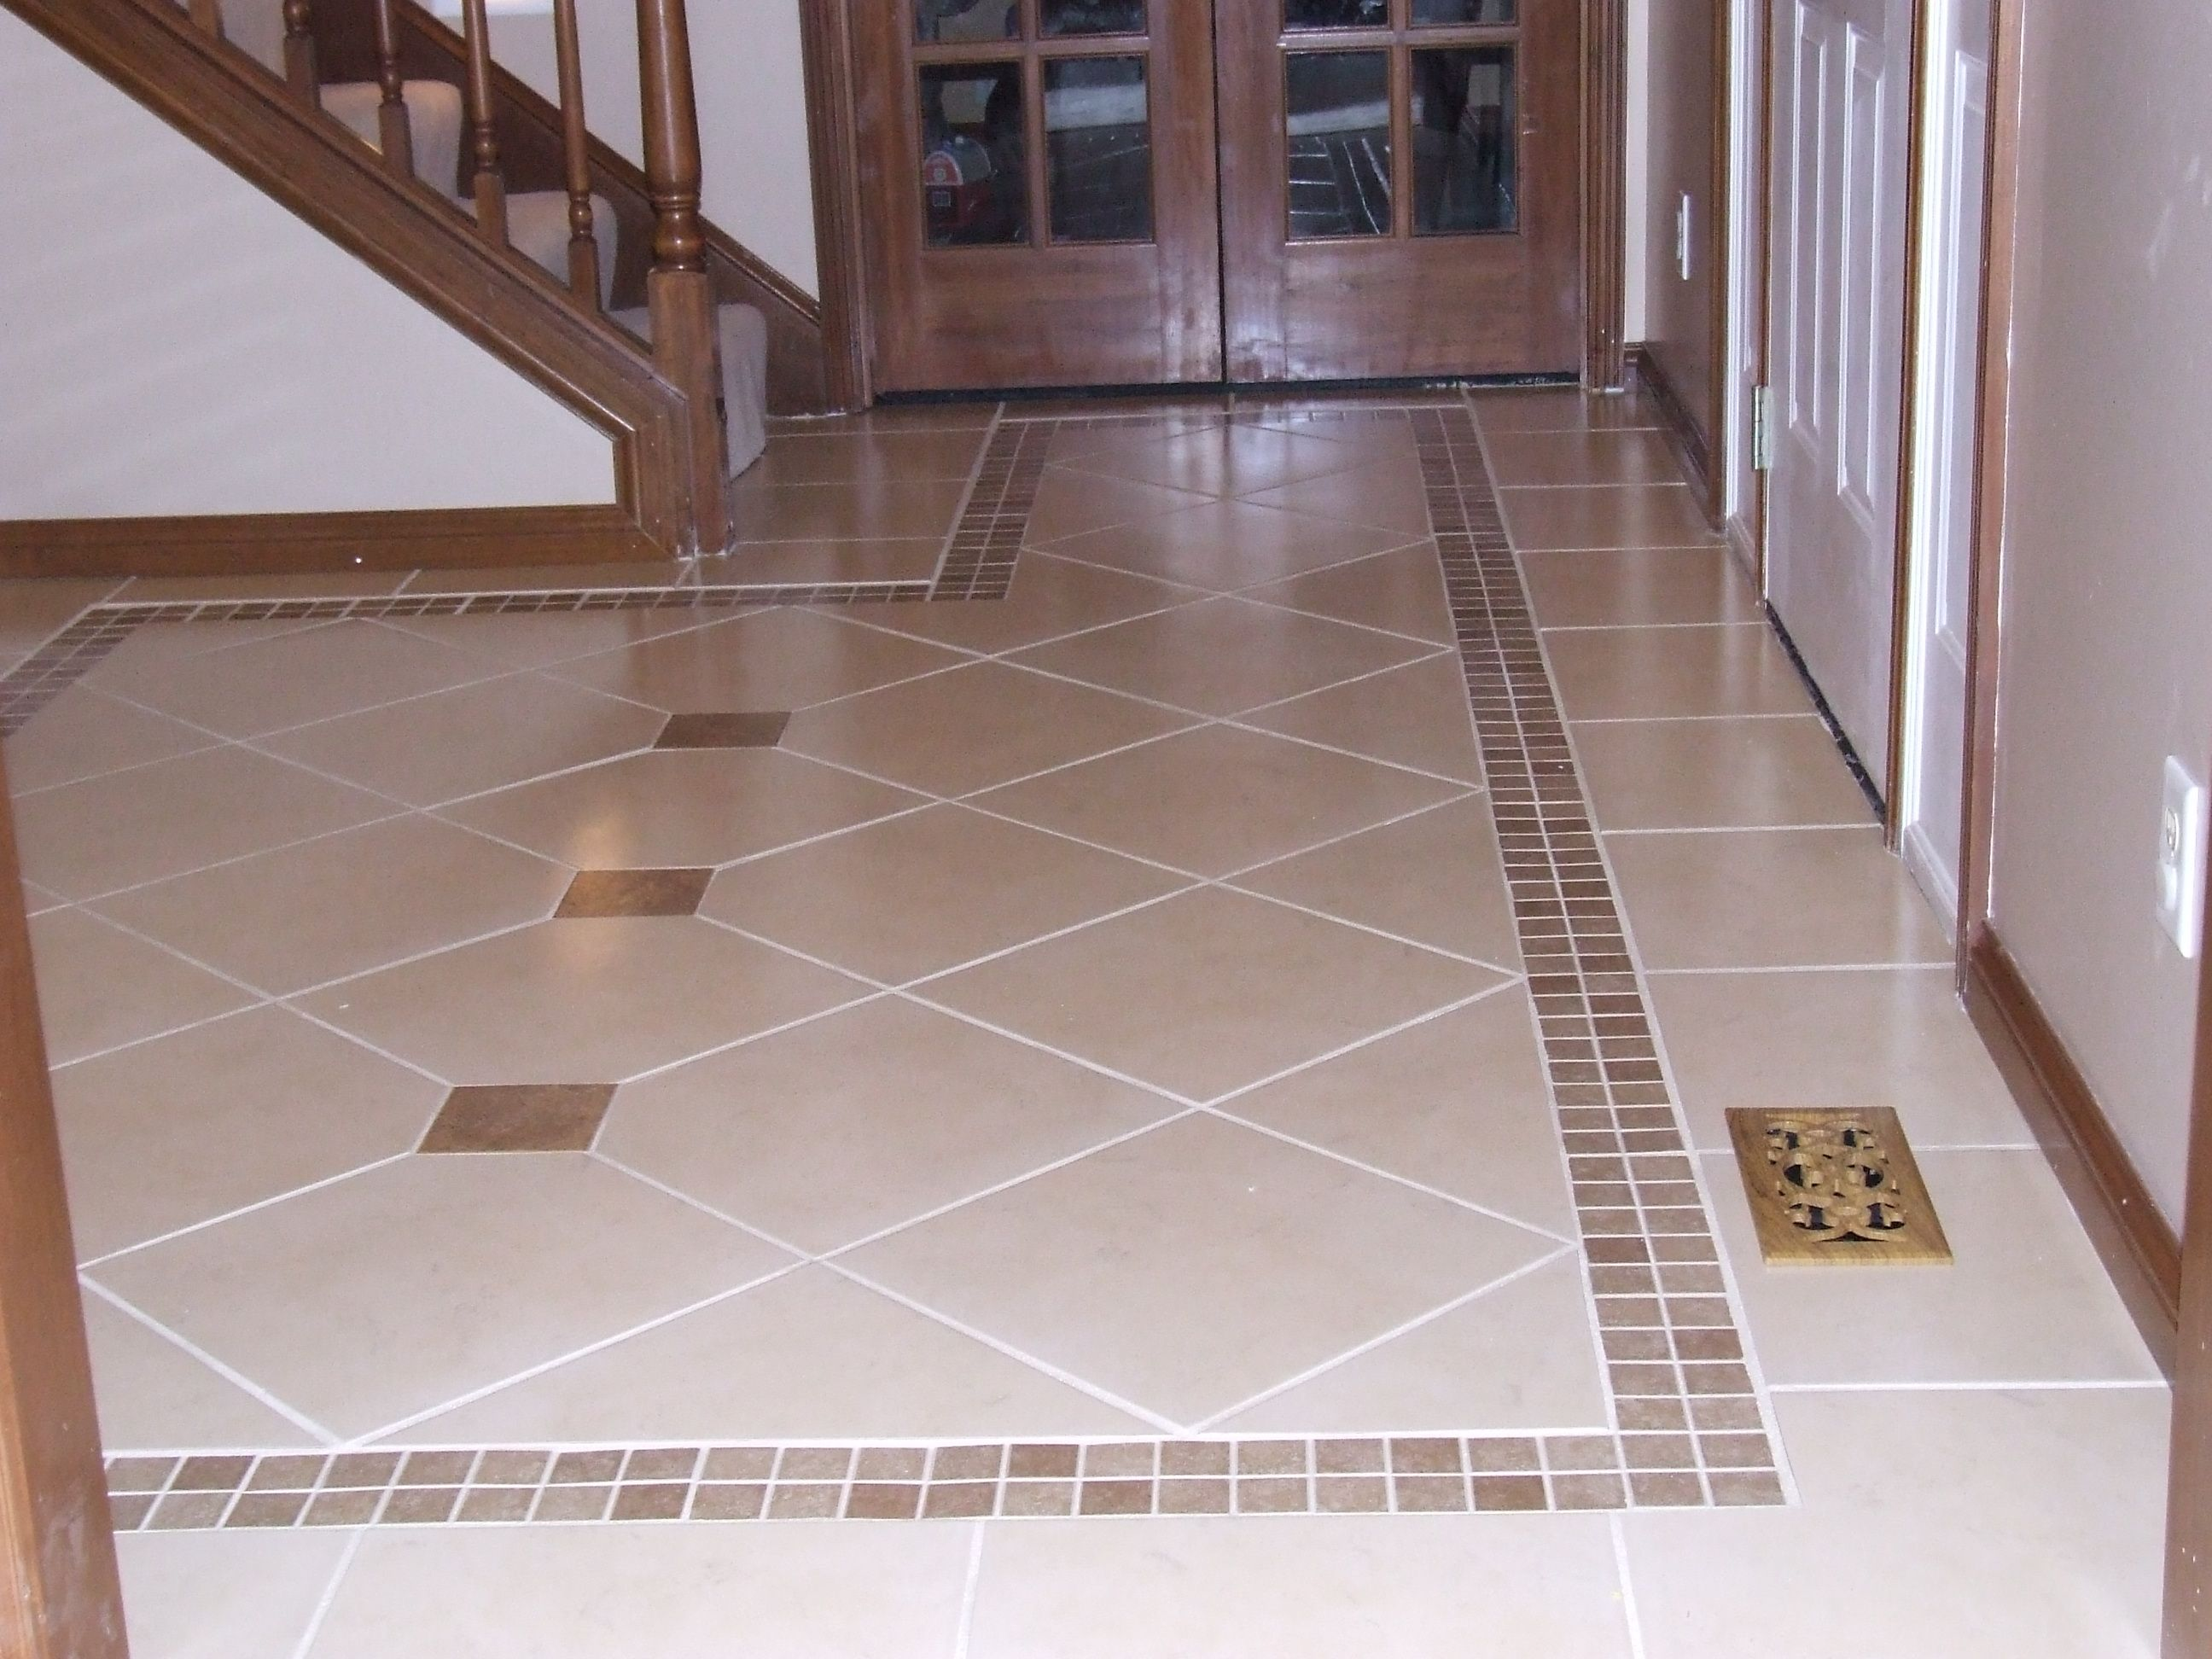 Kitchen Floor Tile Border Ideas Ceramic Designs For Foyer Maybe I Need To Square Off Di On Decorative Home Design